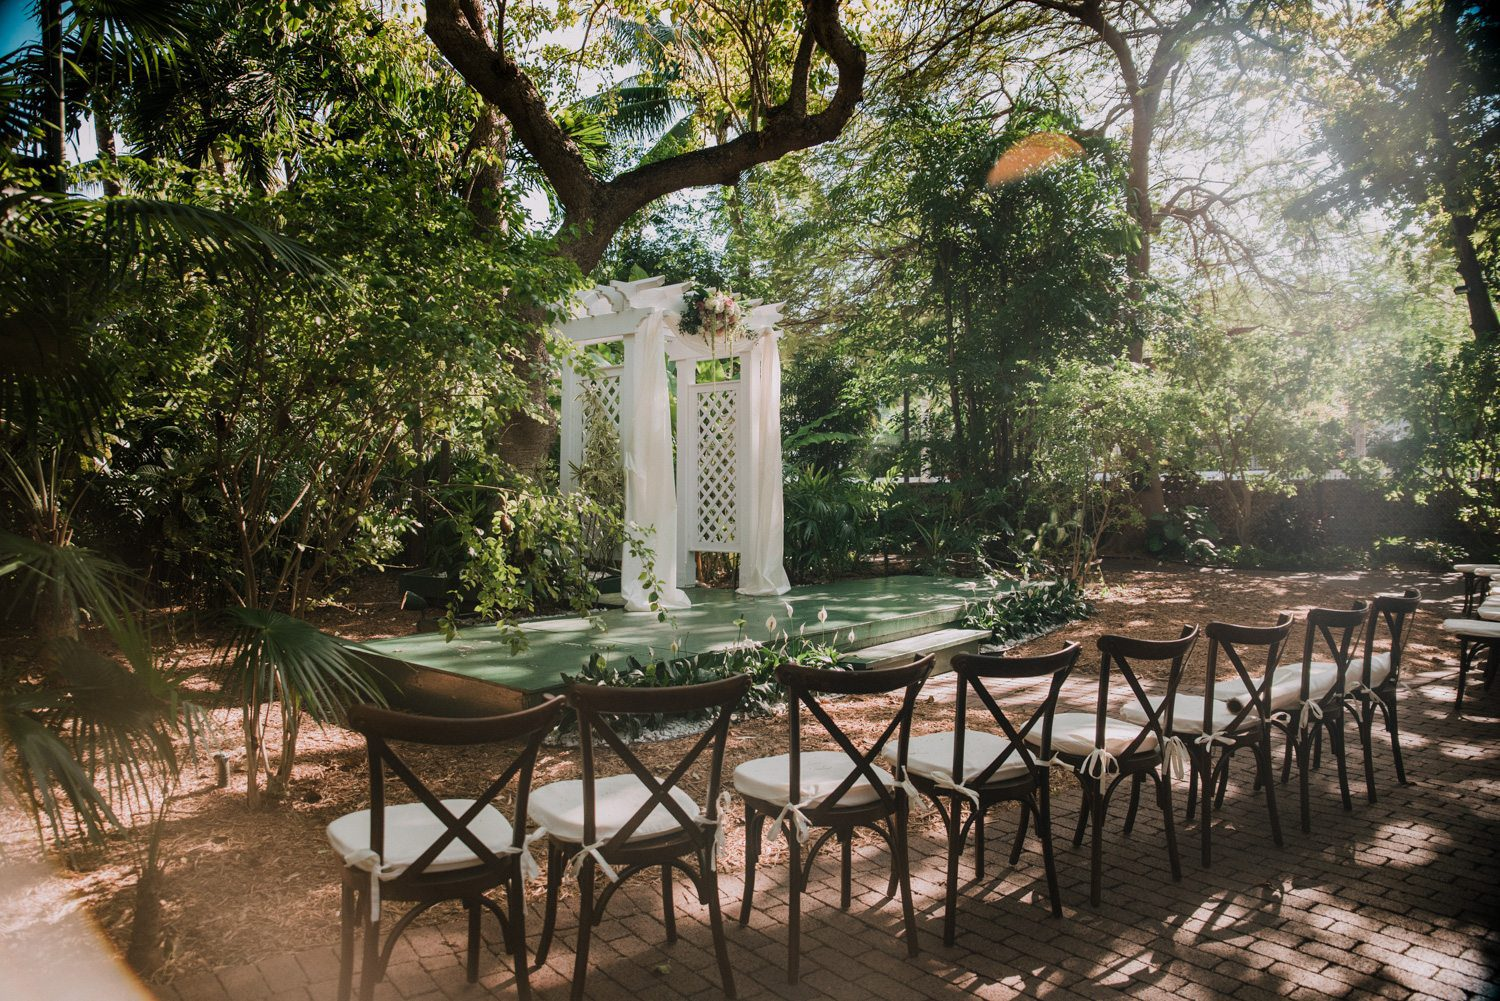 Hemingway house courtyard set up with chairs for a wedding ceremony